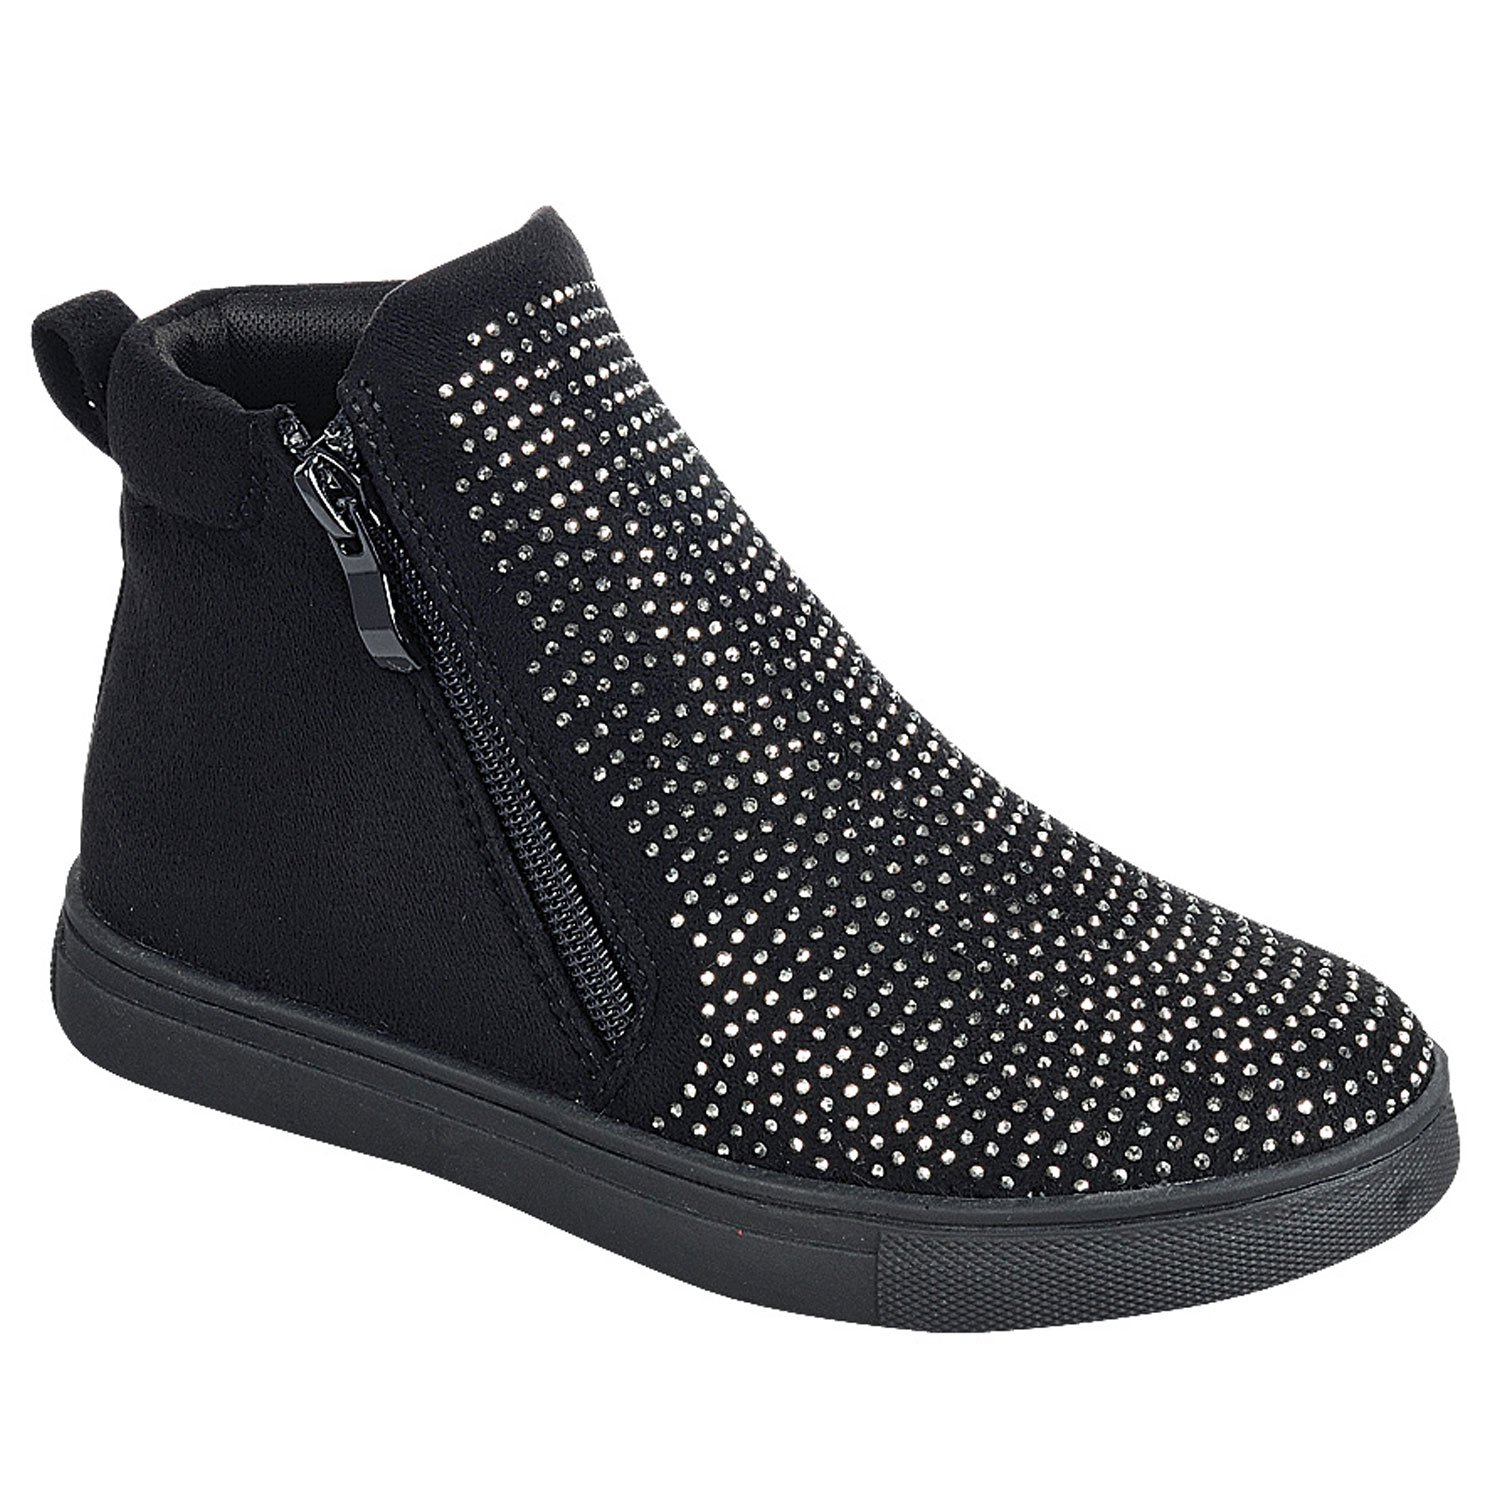 Top Black High Top No Heel Shoe Anti Skid Round Toe Faux Leather Zipper Slipon Bling Modern Flashy Flat Ankle Bootie Back to School Uniform Canvas Sneakers for Girls Youth Kid (Size 4, Black)